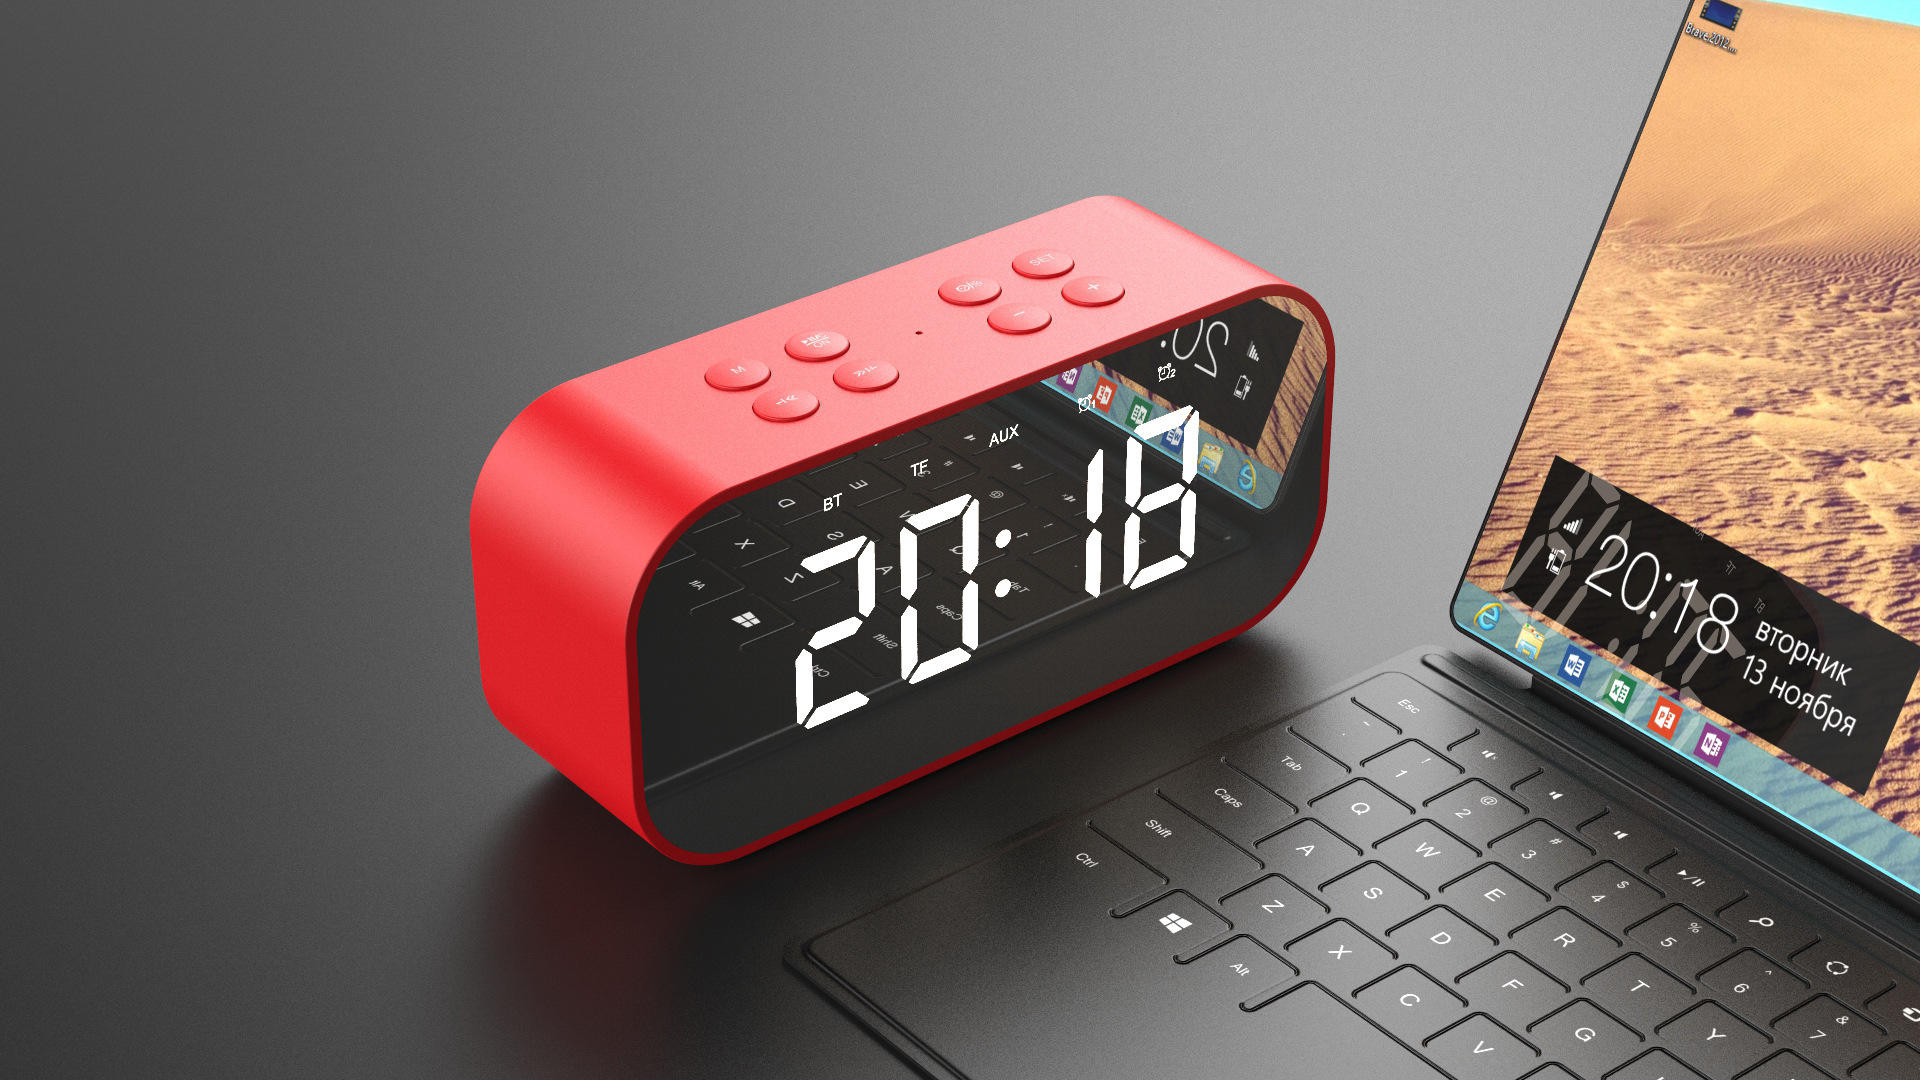 Mirror Music Sound Box LED Time Snooze Alarm Clock for Laptop Phone 5